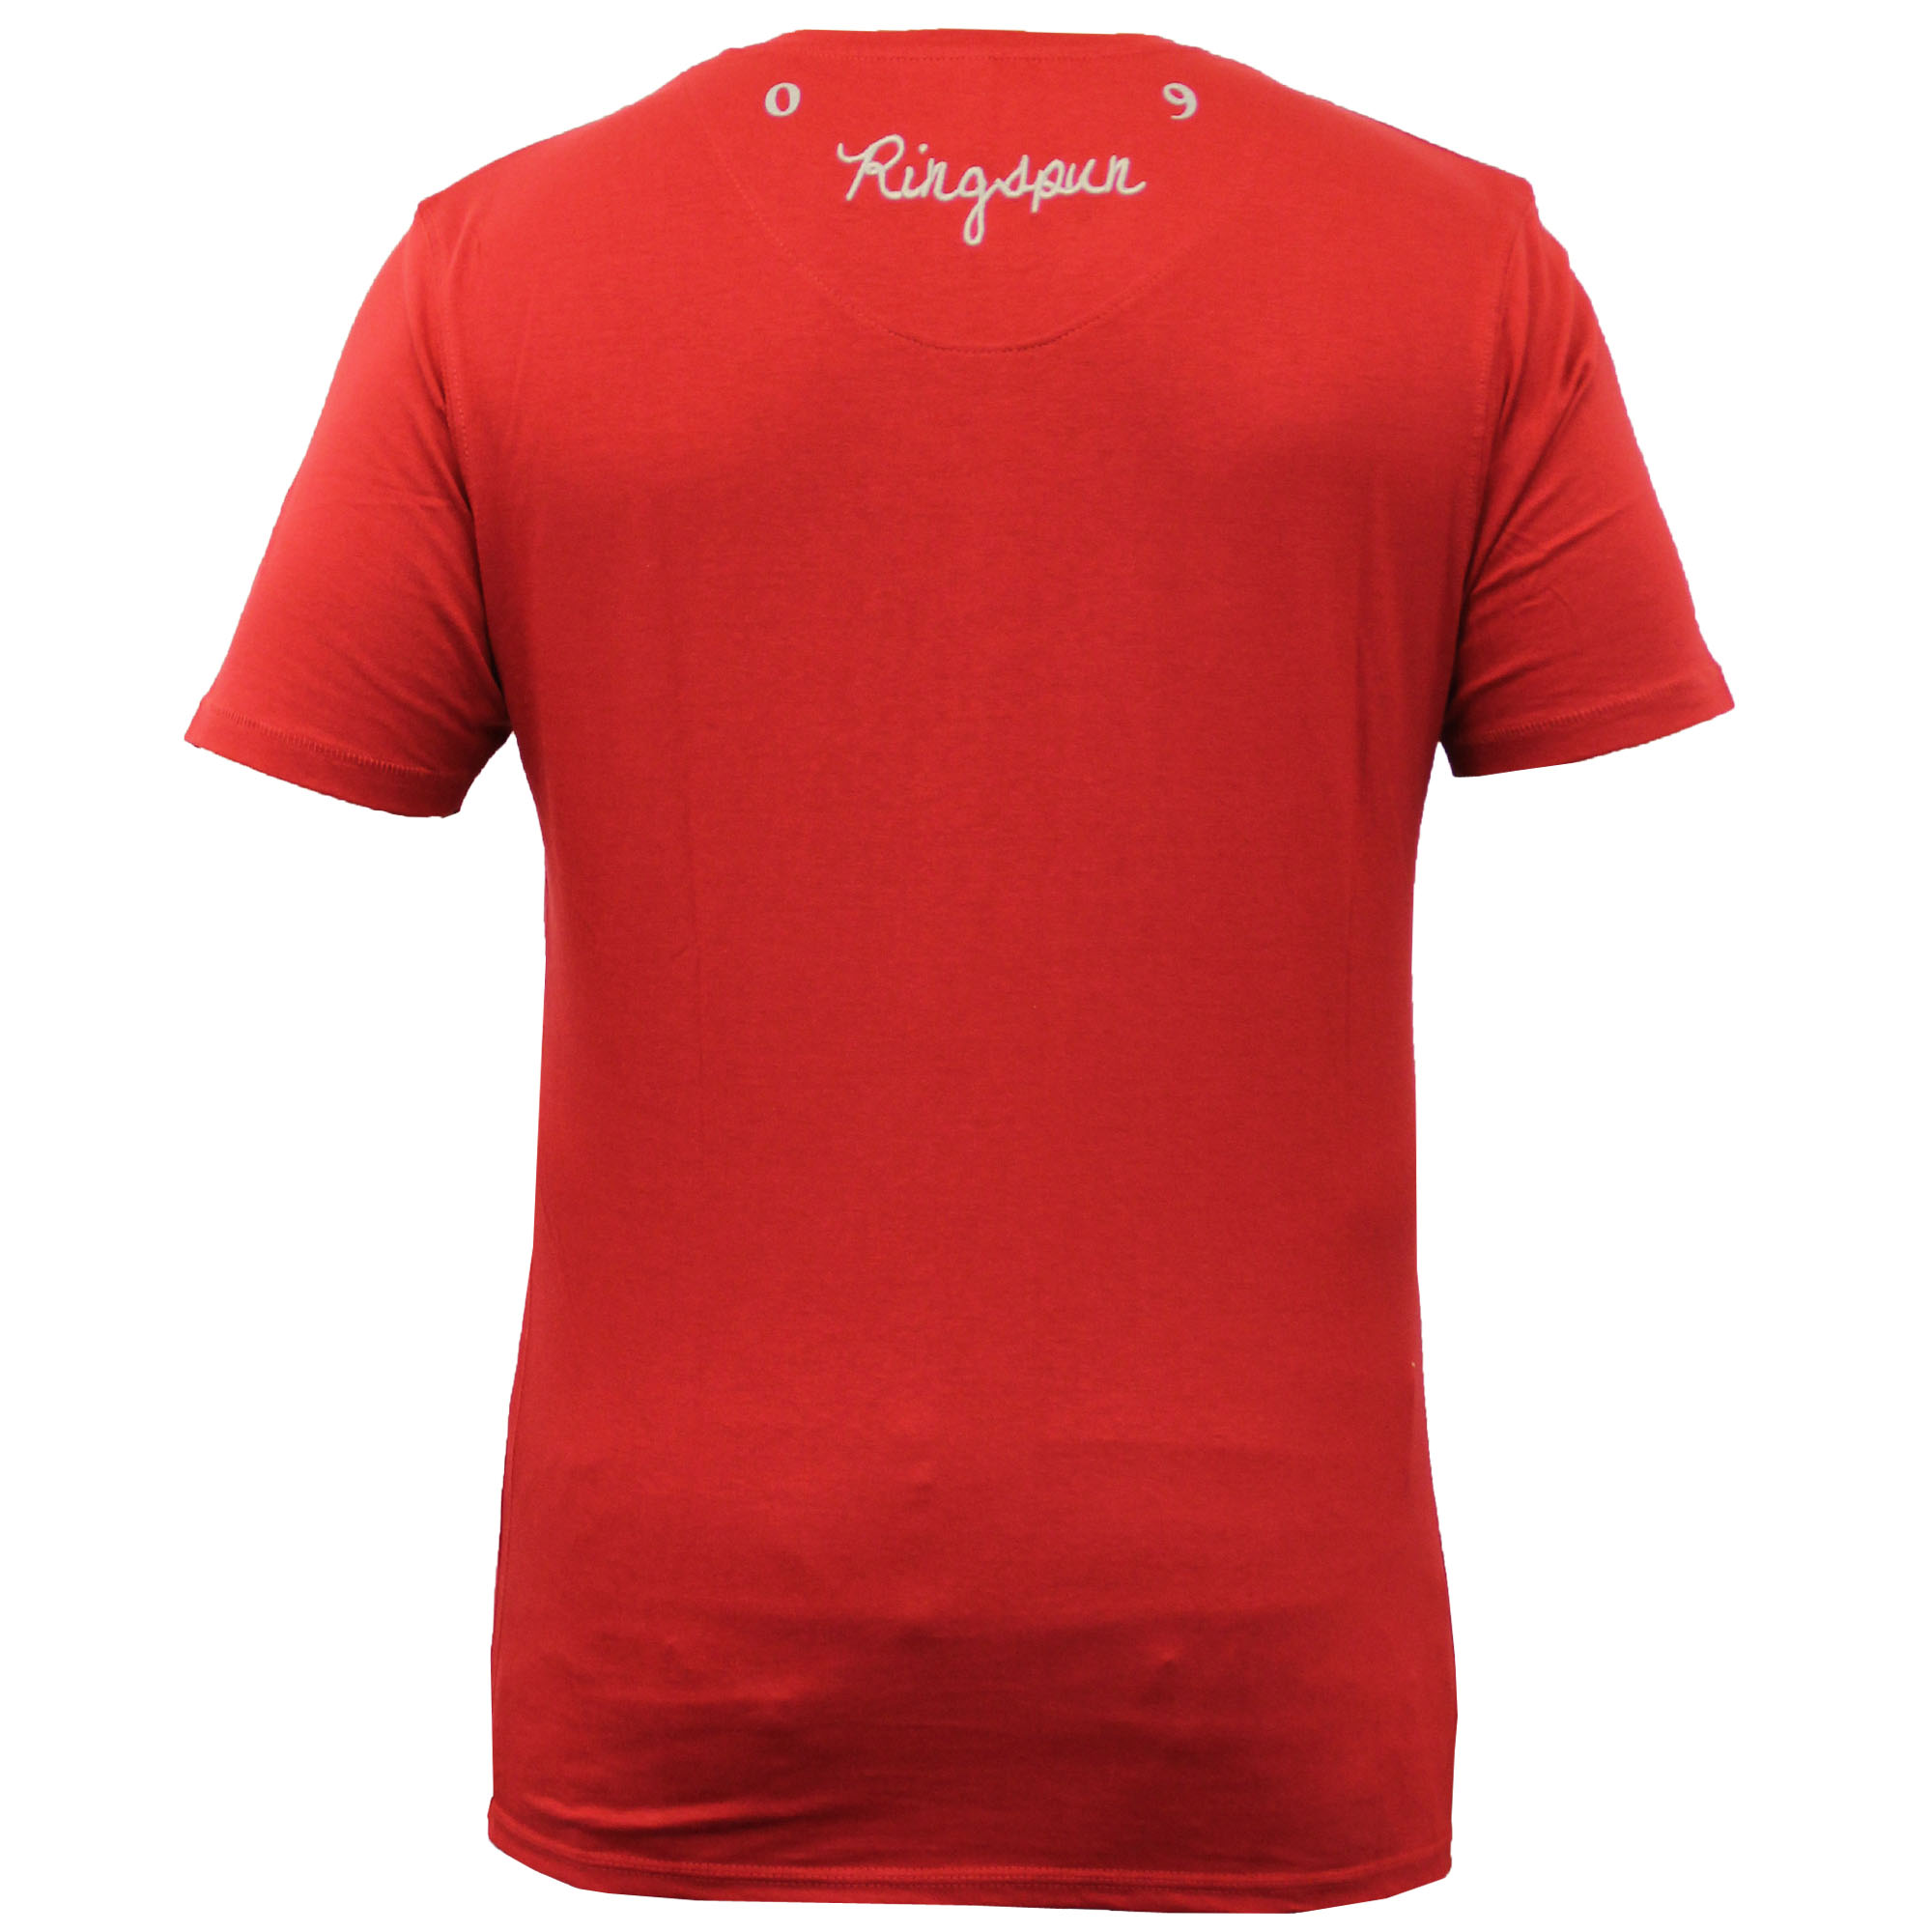 Mens-Short-Sleeved-Embroidered-T-Shirt-By-Ringspun